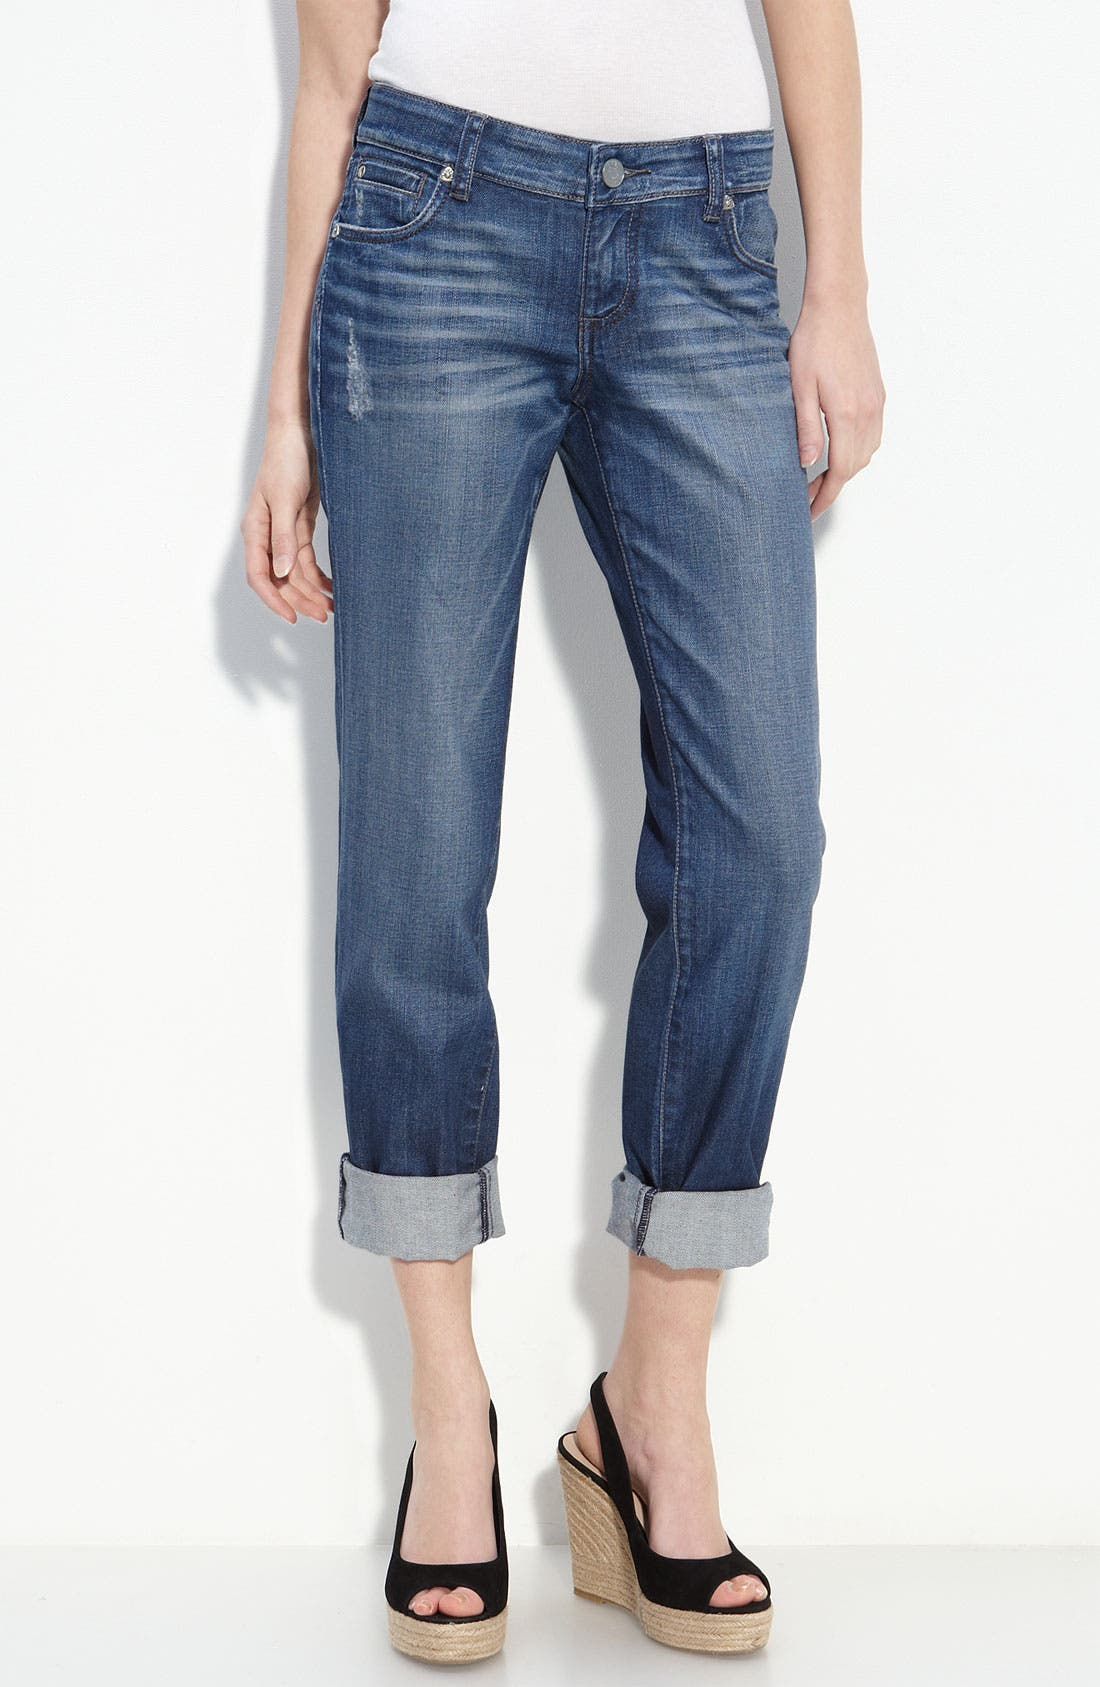 Alternate Image 1 Selected - KUT from the Kloth 'Roll-Up' Boyfriend Stretch Jeans (Indulgent Wash)